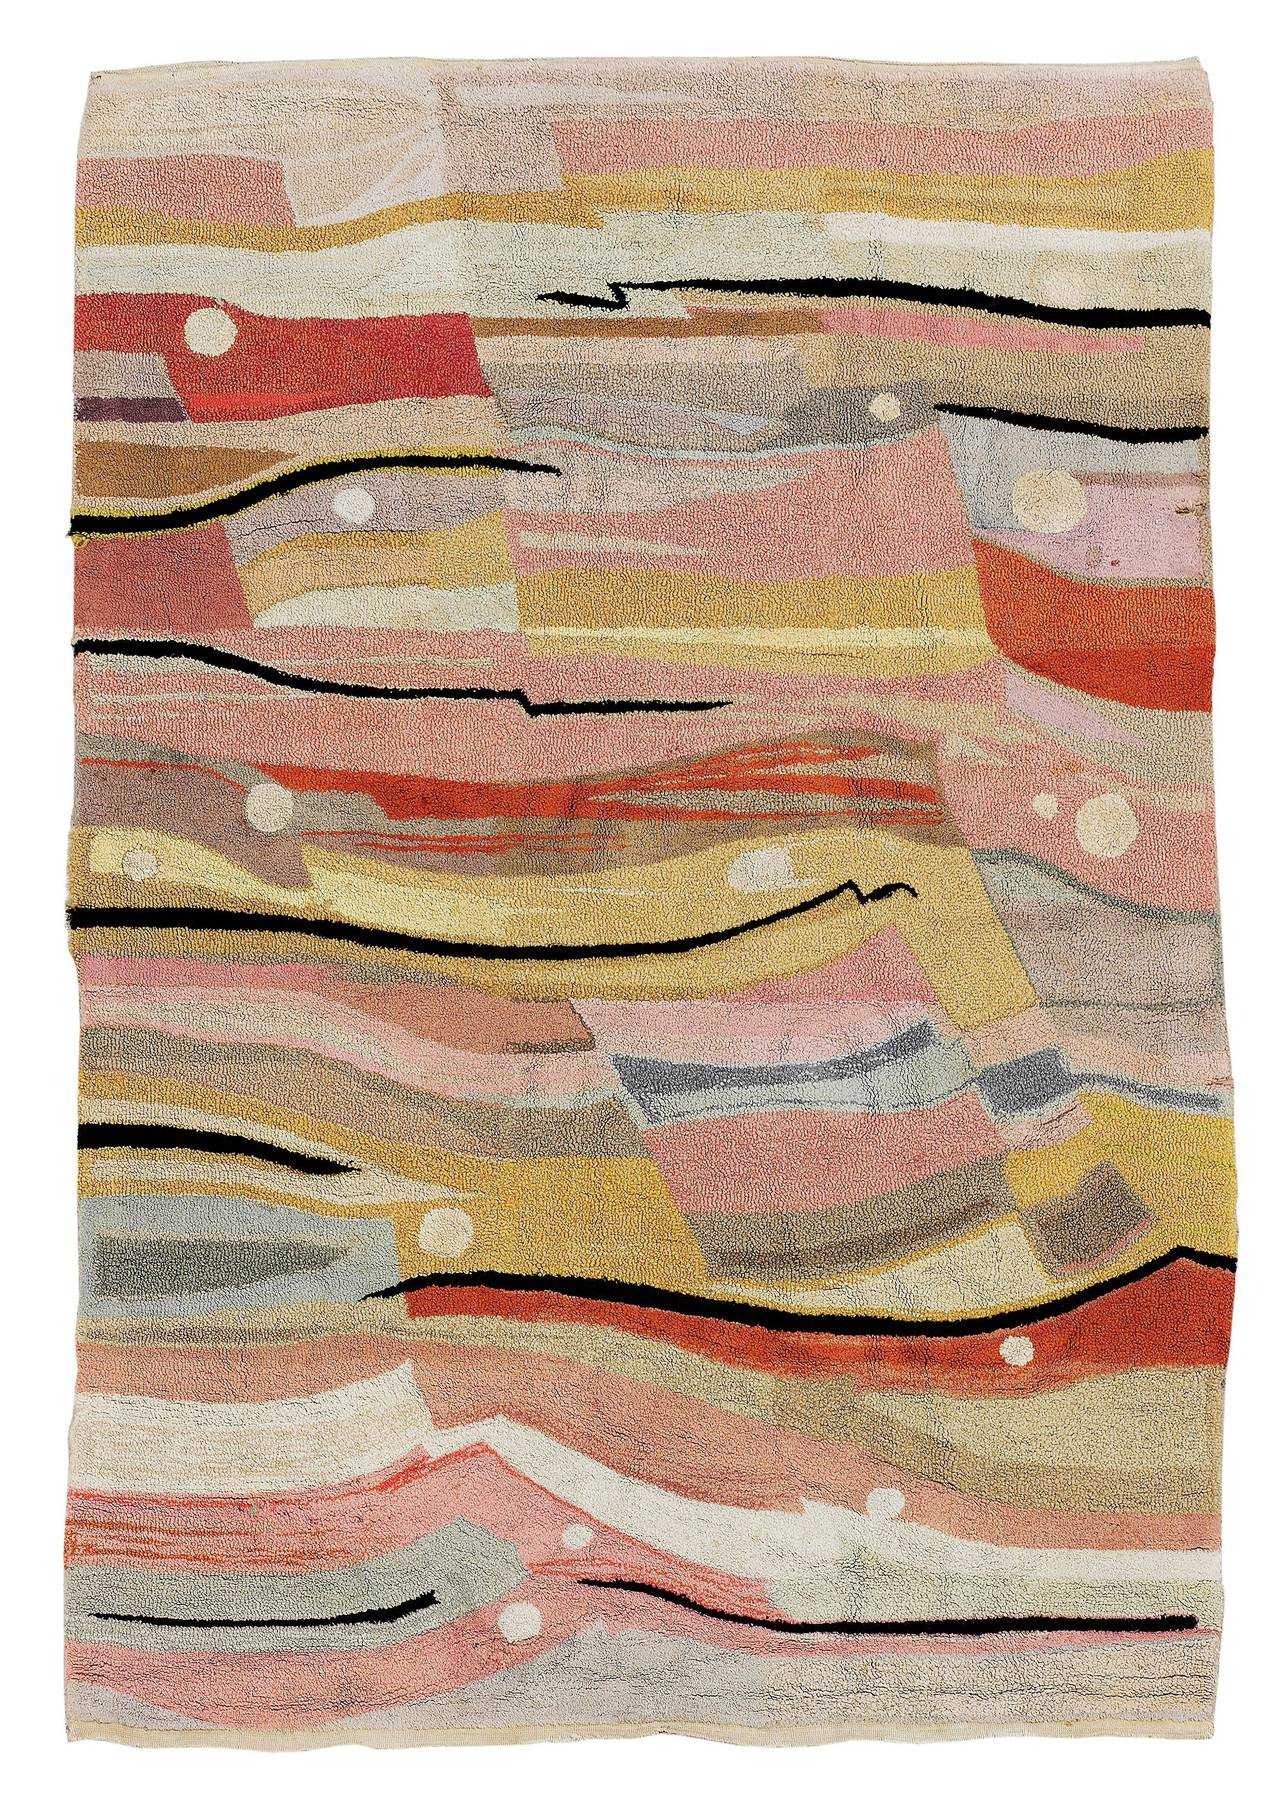 Modernist Bauhaus German Rug At 1stdibs